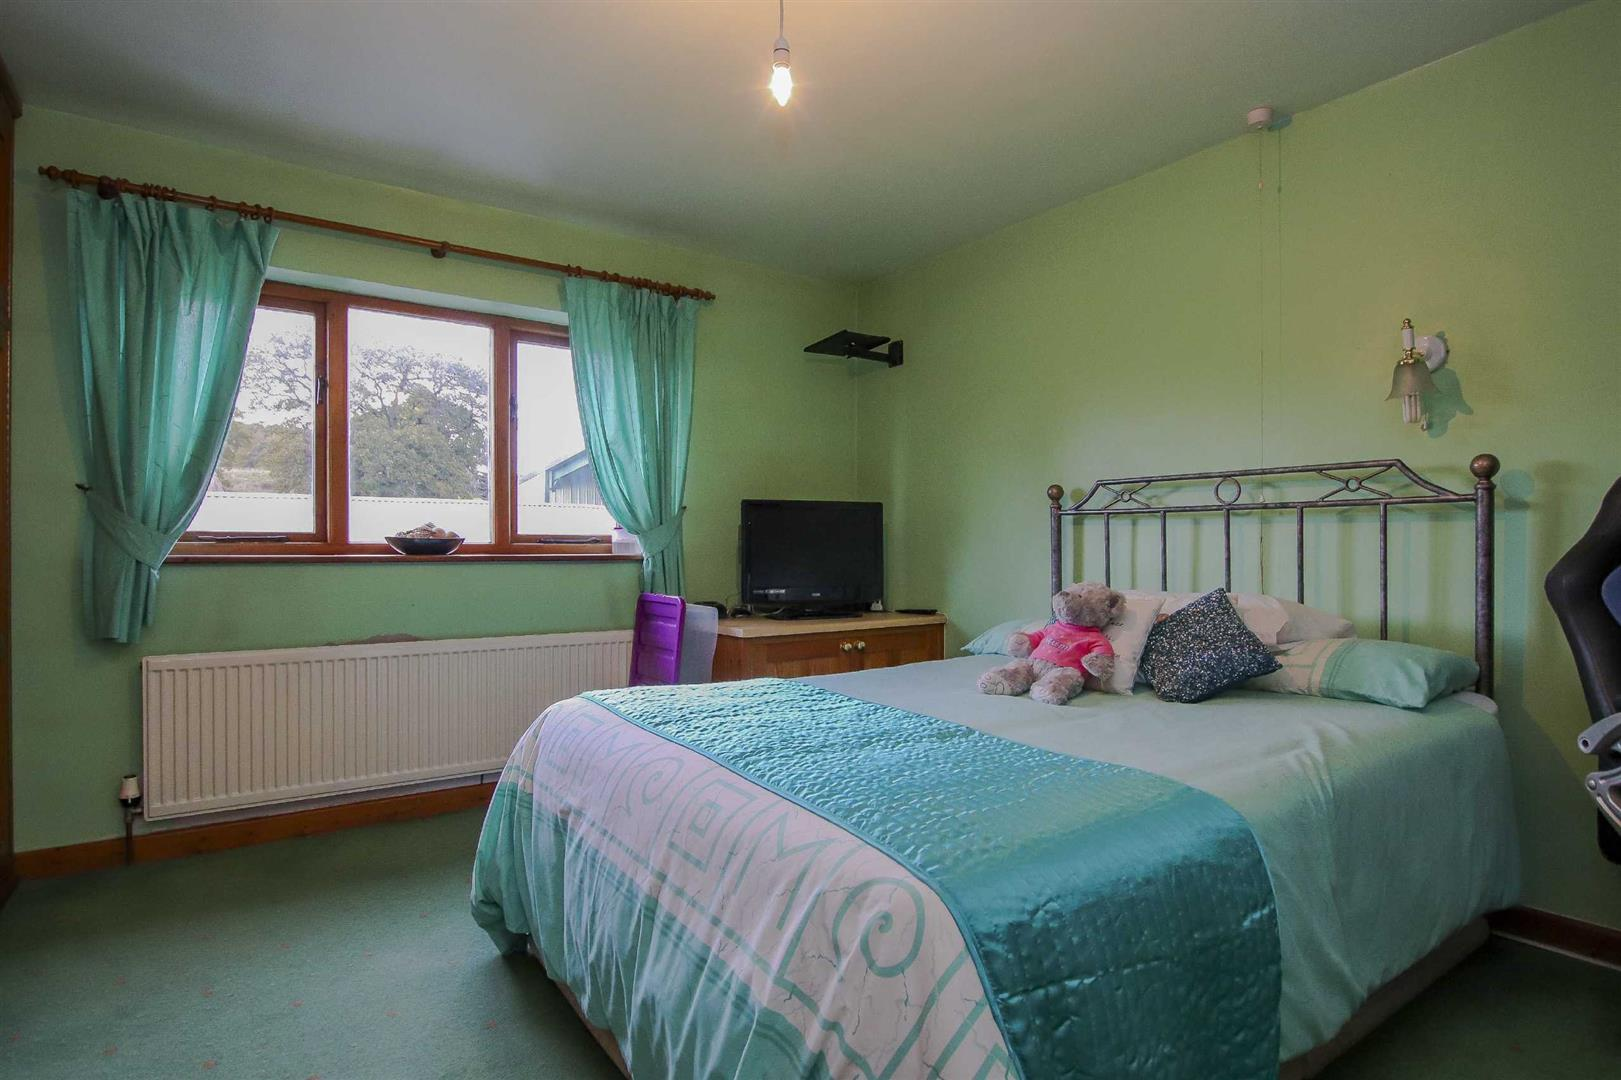 9 Bedroom Barn Conversion For Sale - Image 22